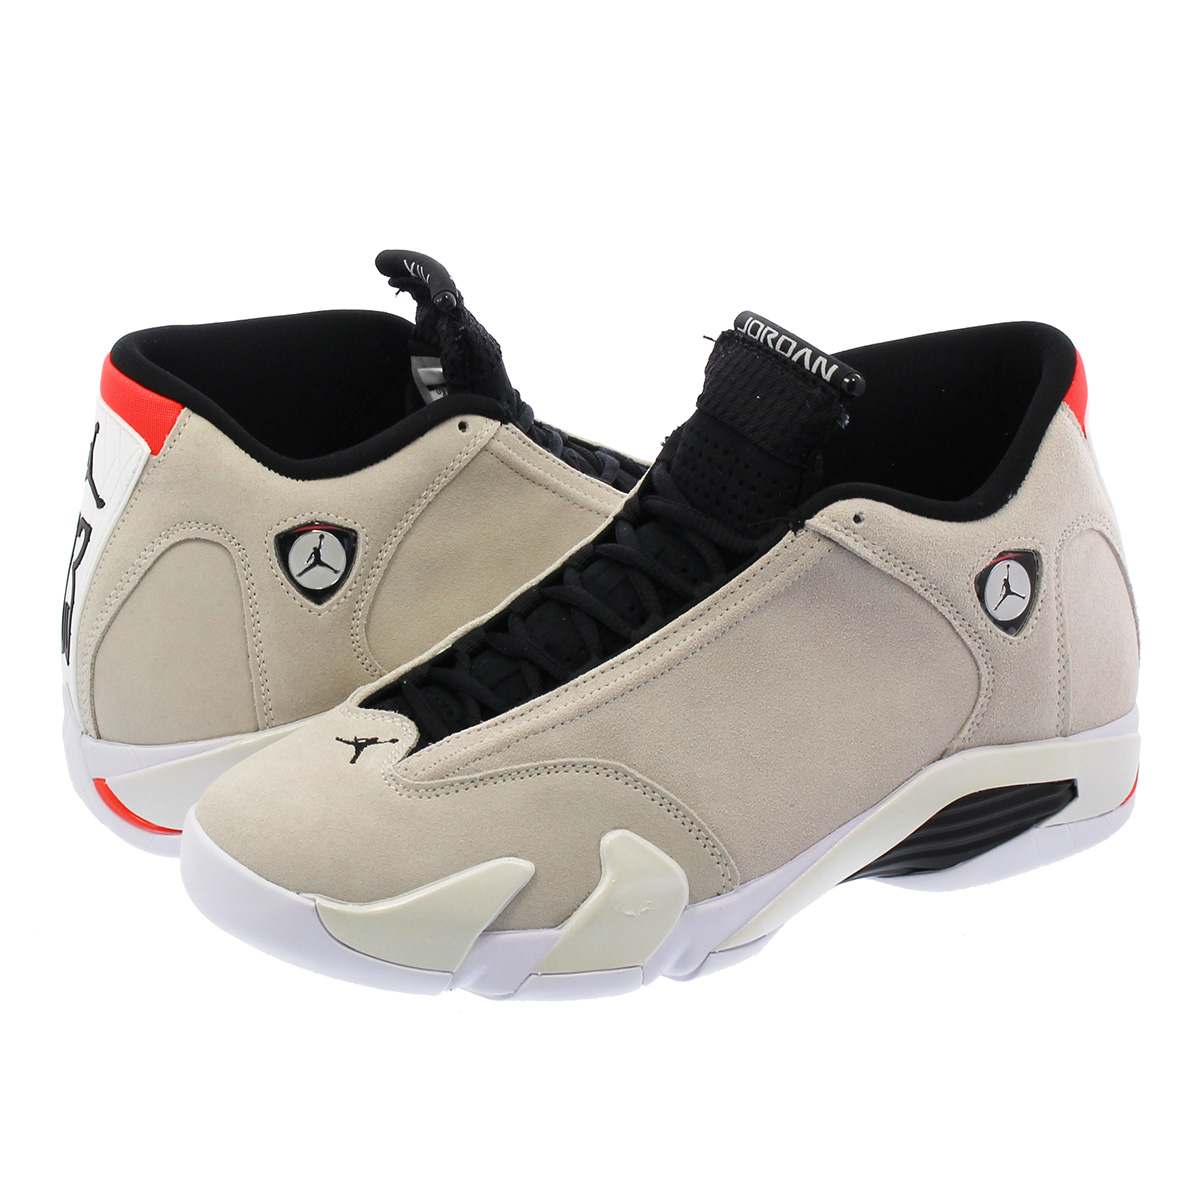 buy popular 74594 000e3 NIKE AIR JORDAN 14 RETRO Nike Air Jordan 14 nostalgic DESERT  SAND/BLACK/WHITE/INFRARED 23 487,471-021